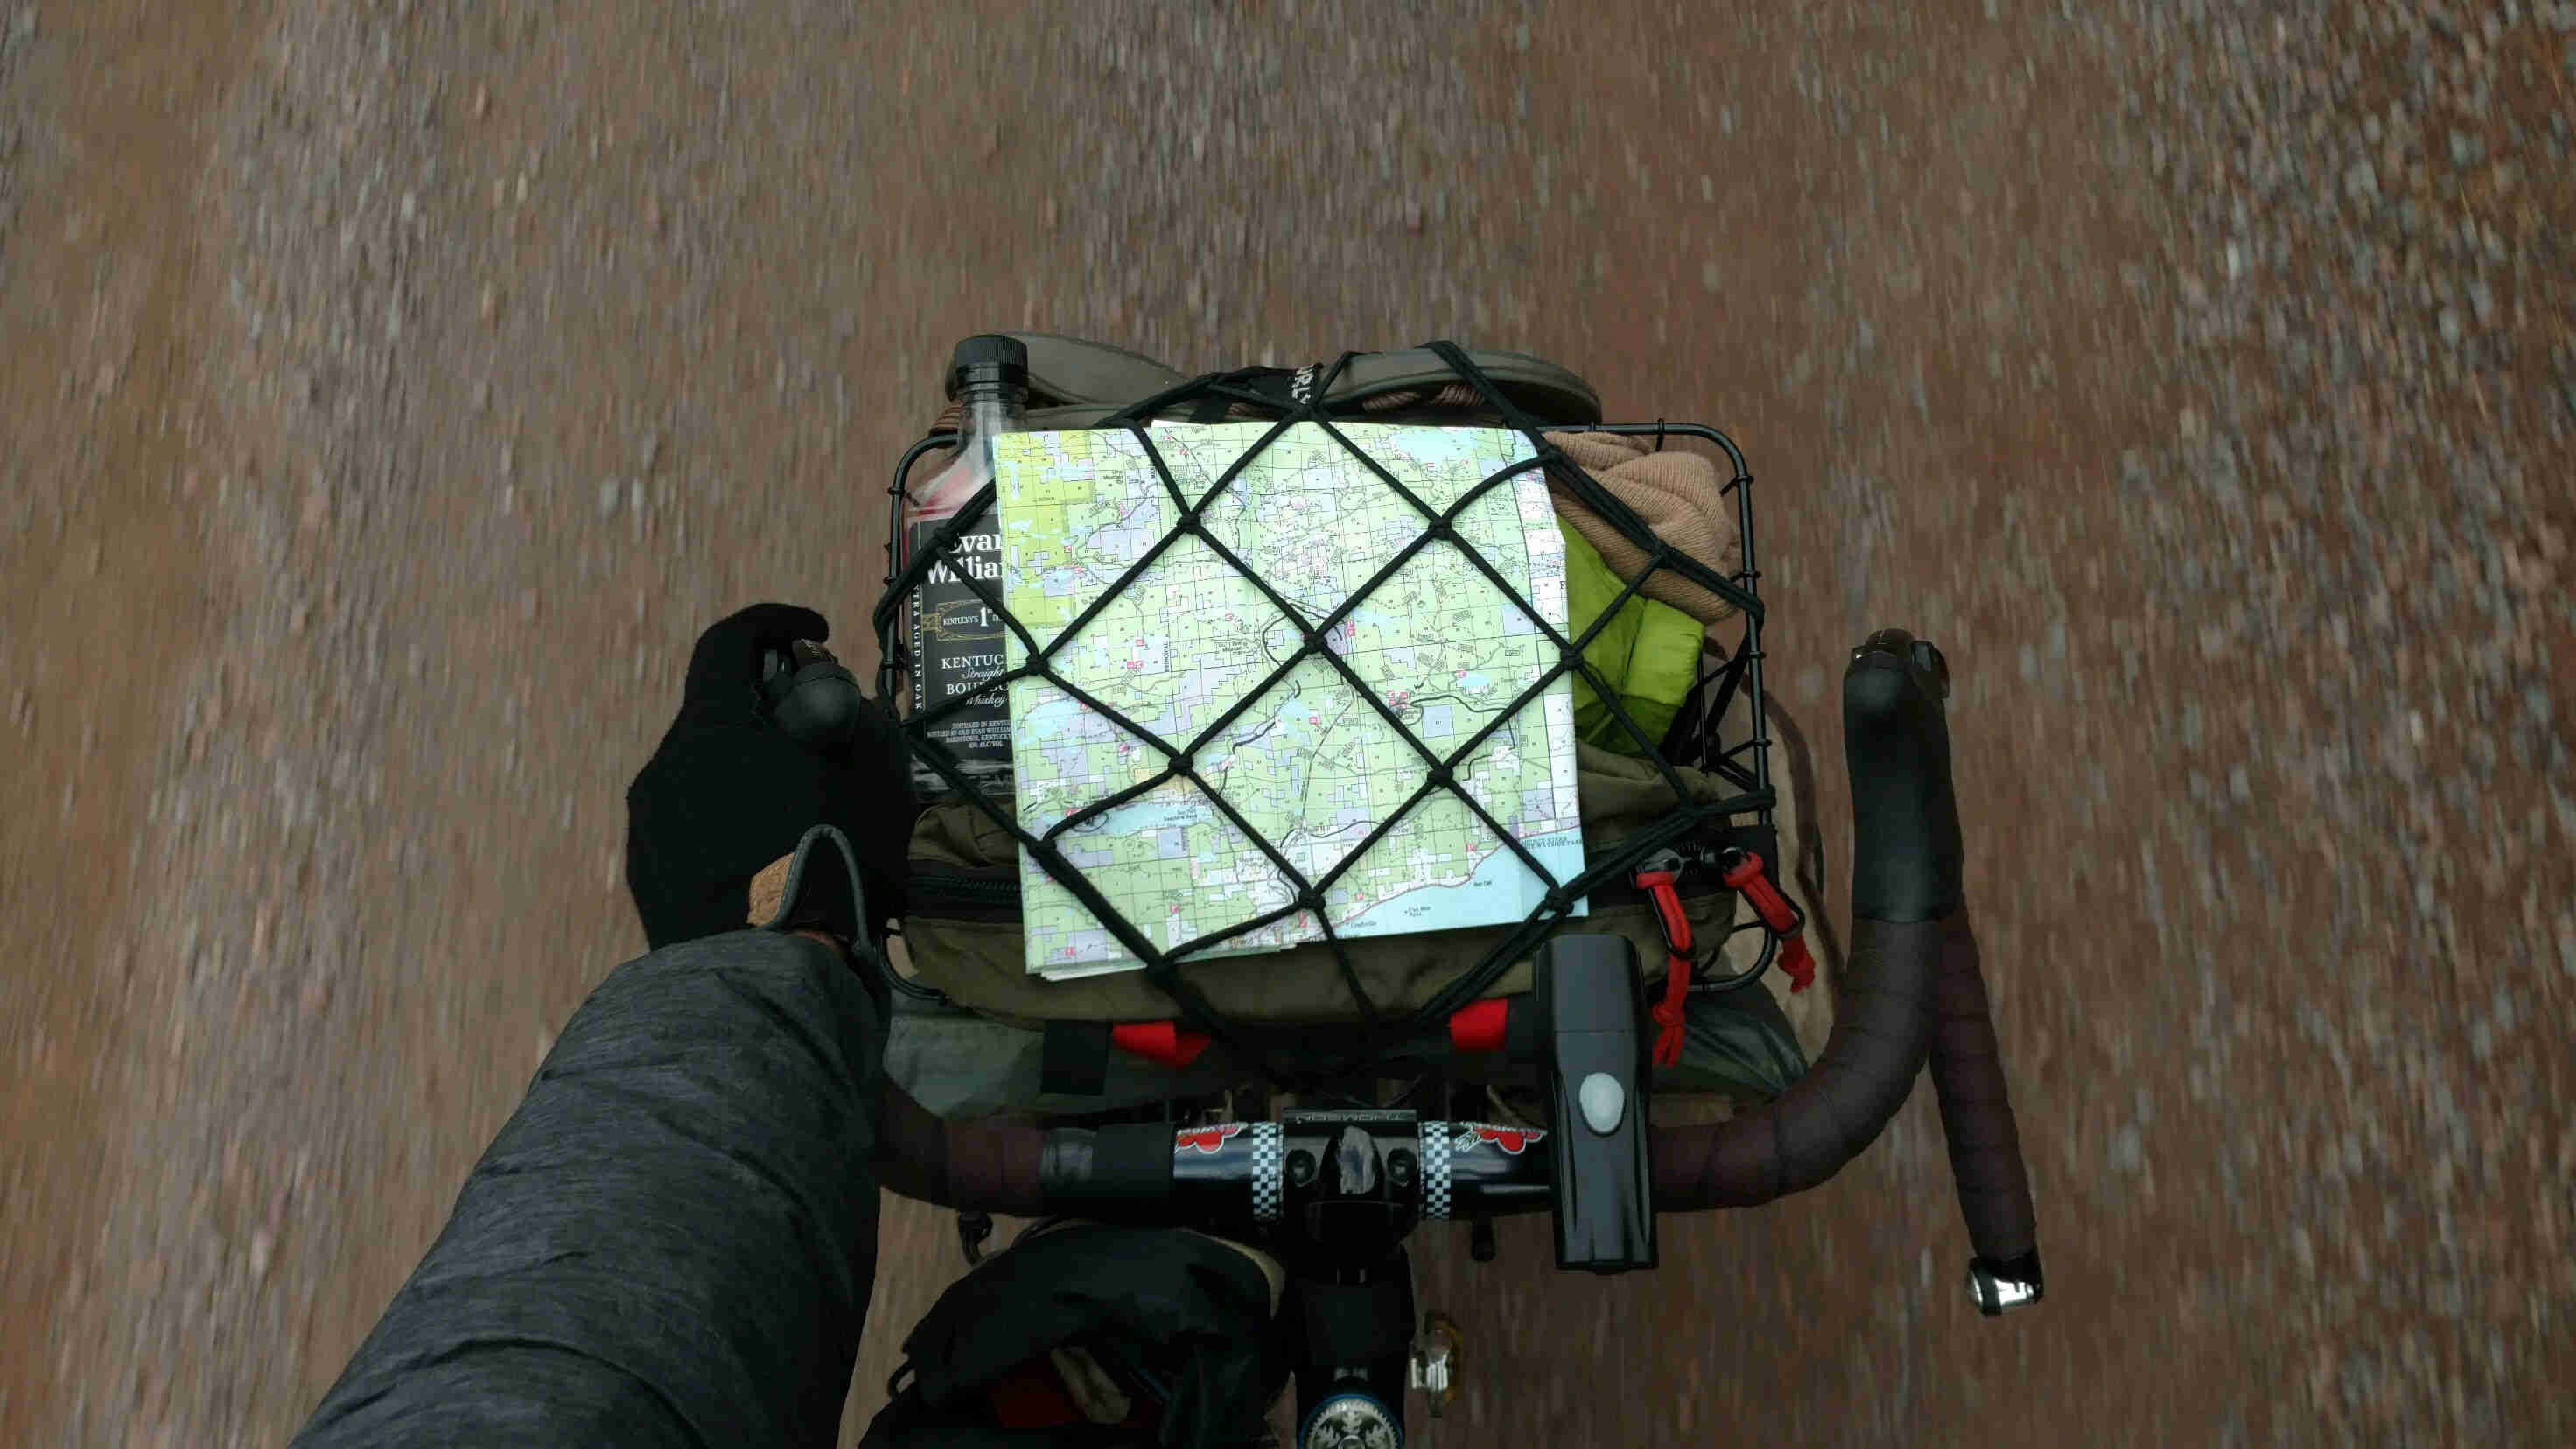 Downward view of bike handle bars and pack with a map strapped to the top, on a bike traveling down a gravel road